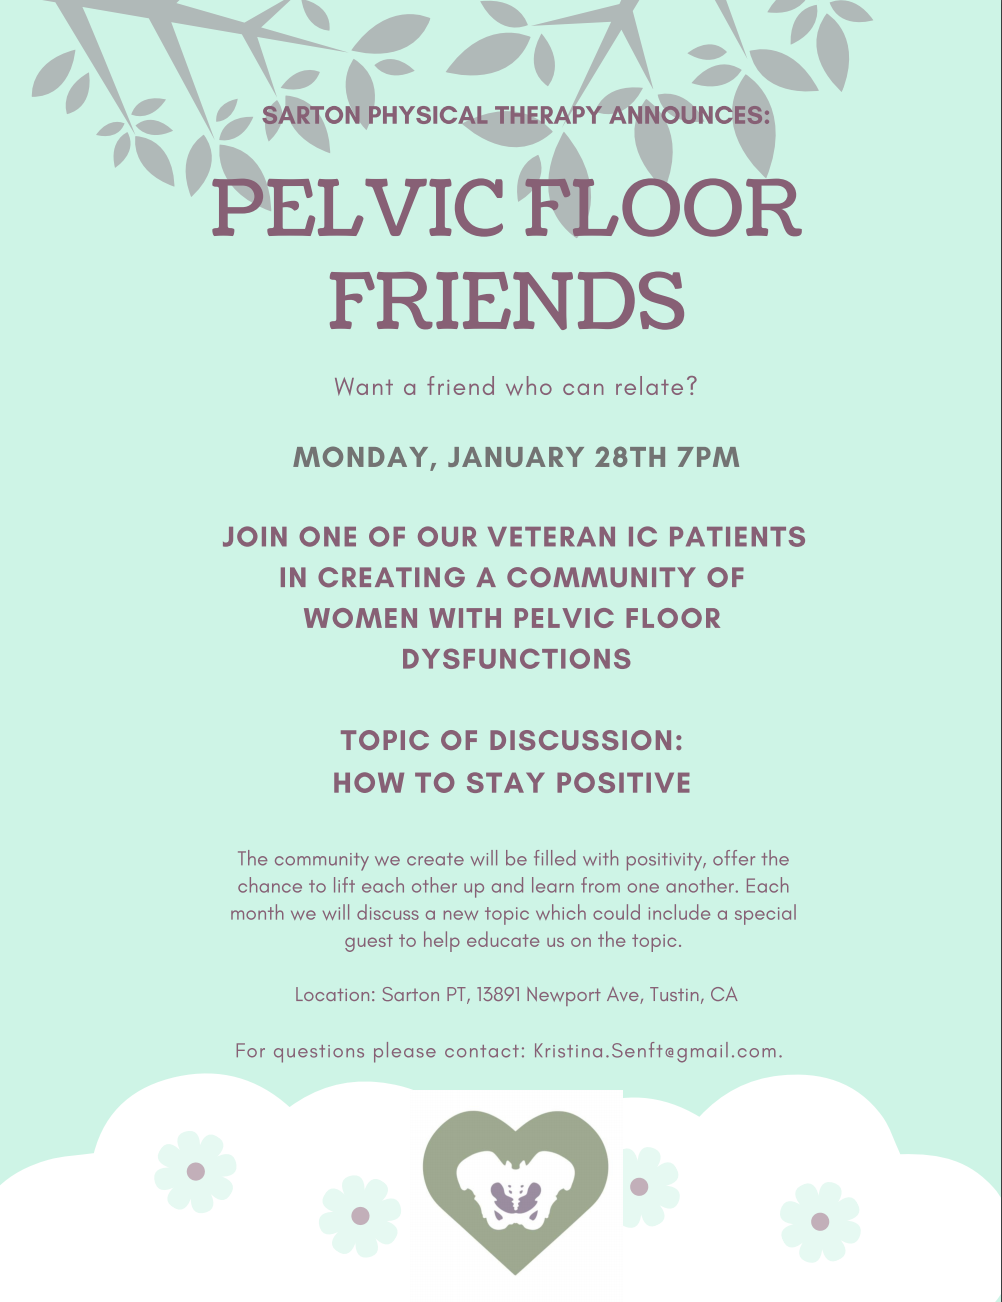 Stay Positive with Pelvic Floor Dysfunction